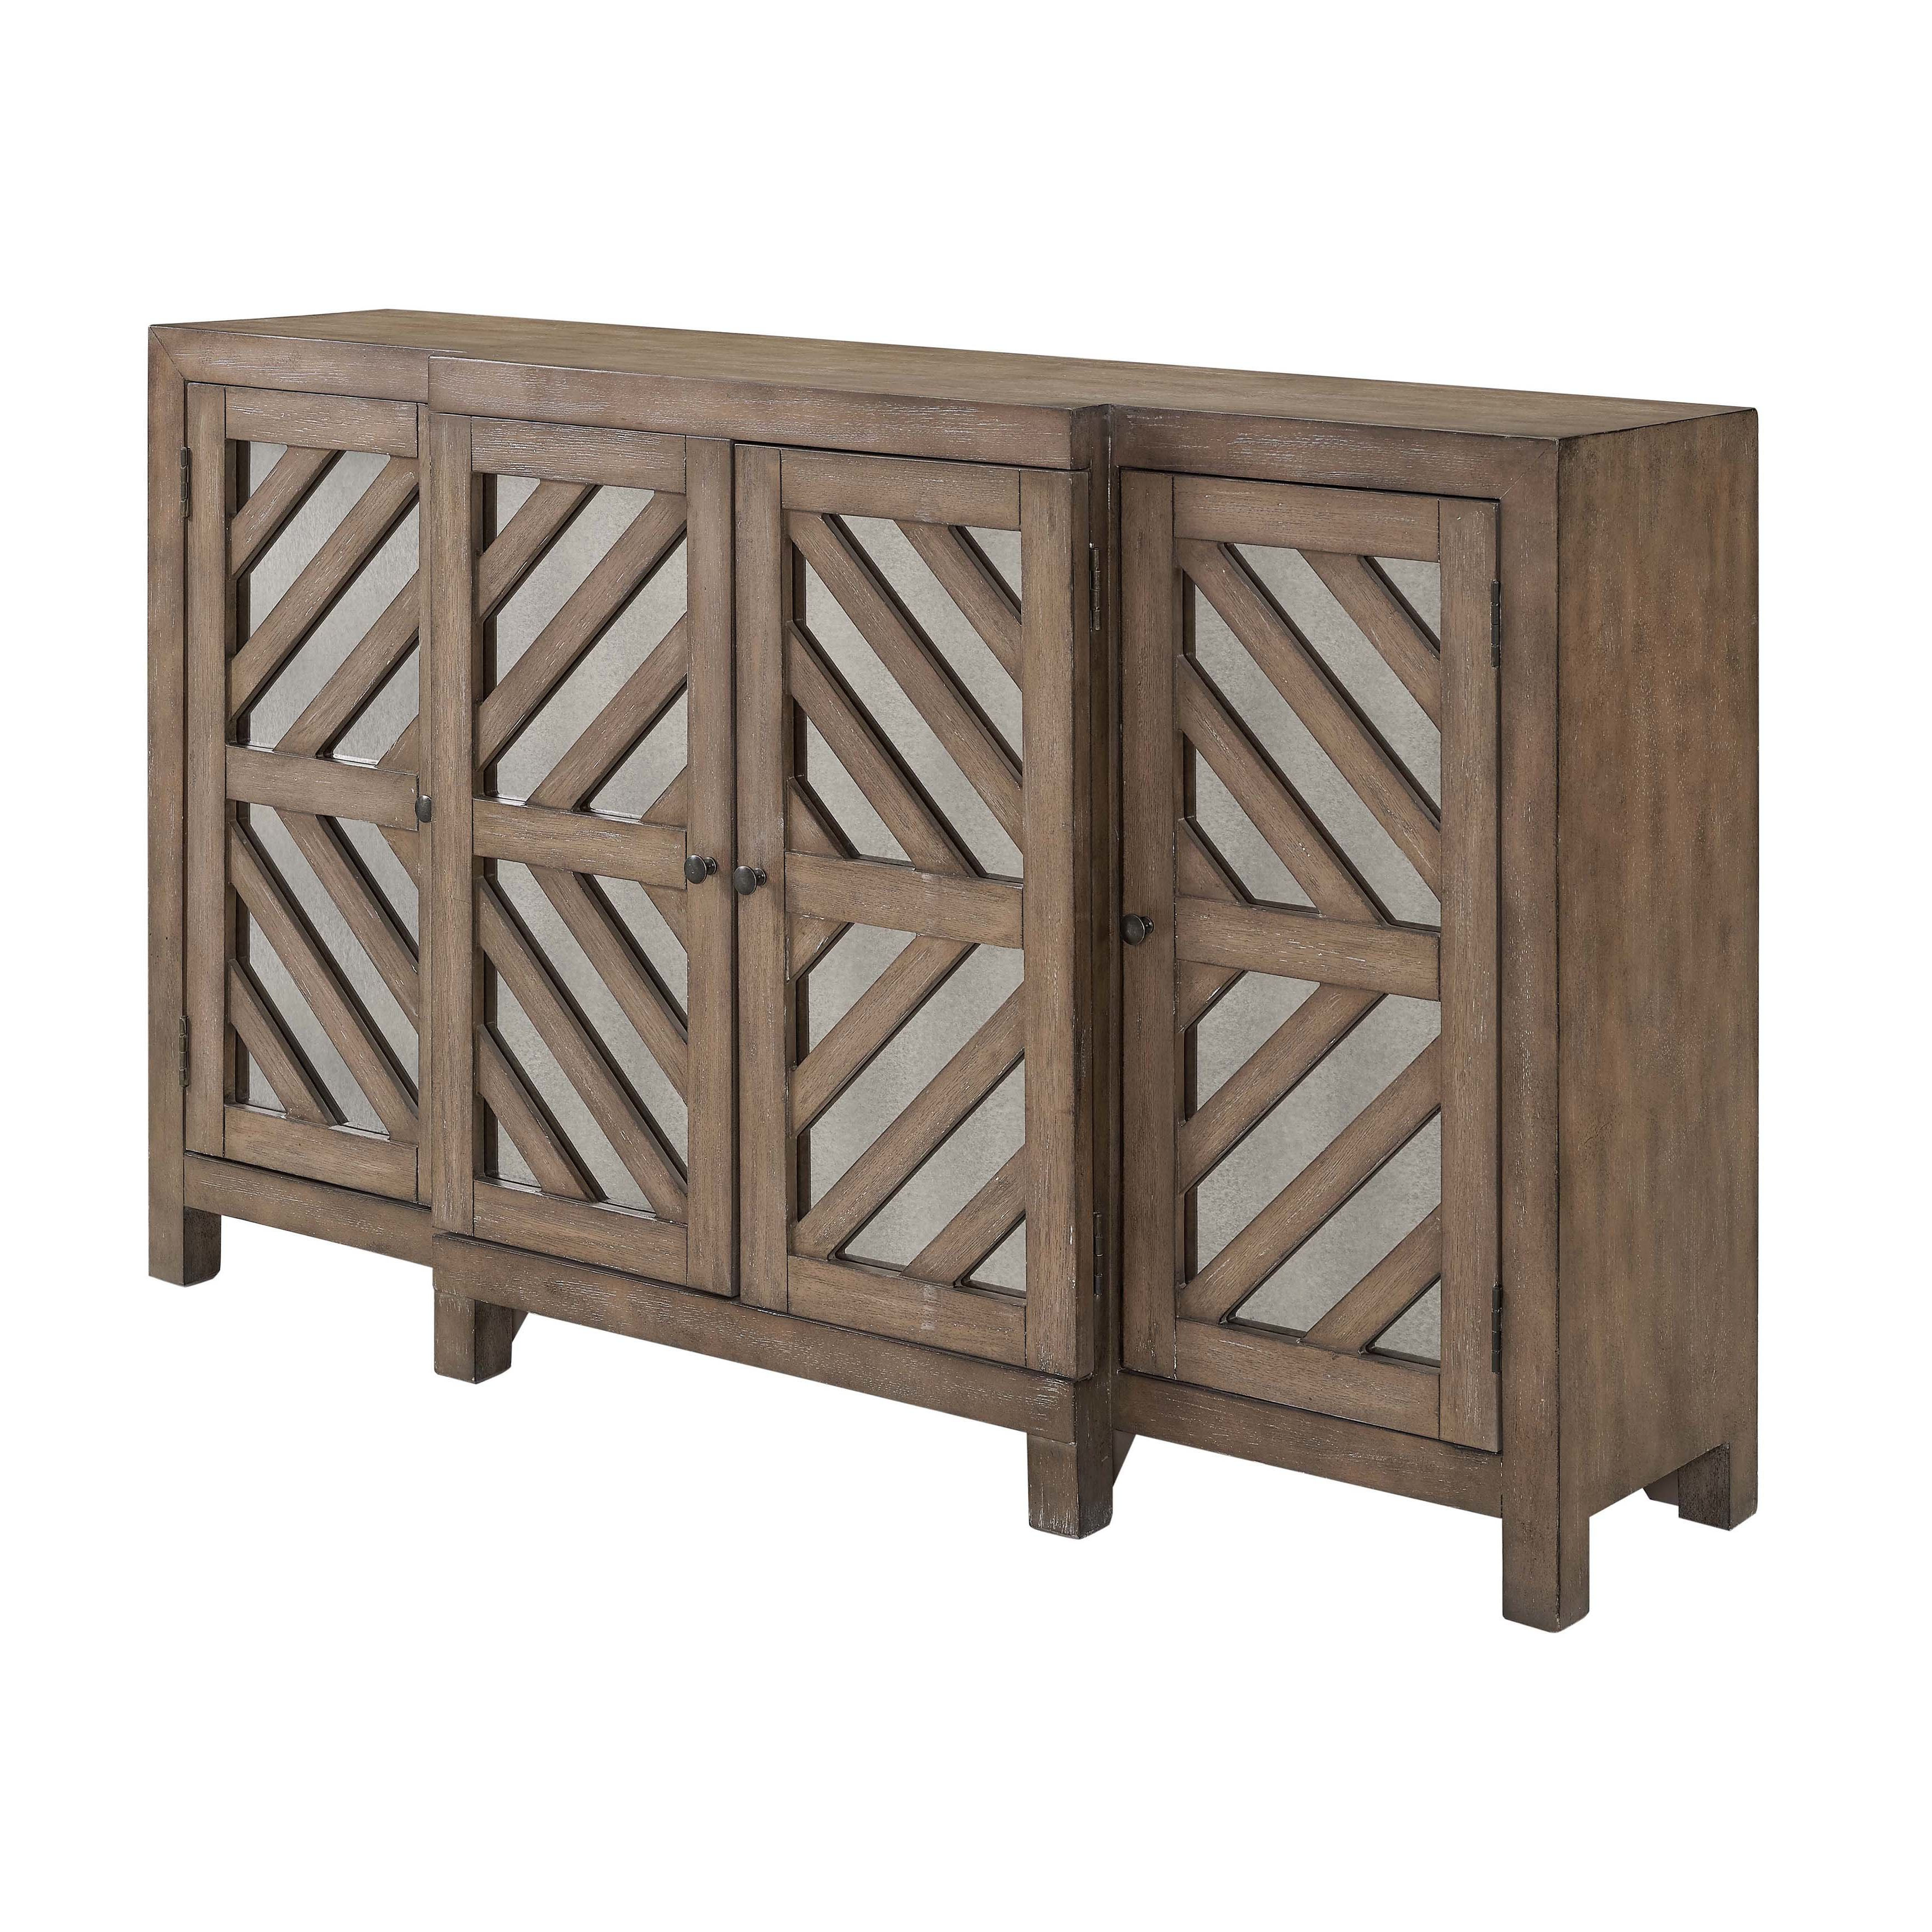 Union Rustic Lowrey Credenza Throughout Stephen Credenzas (View 3 of 20)